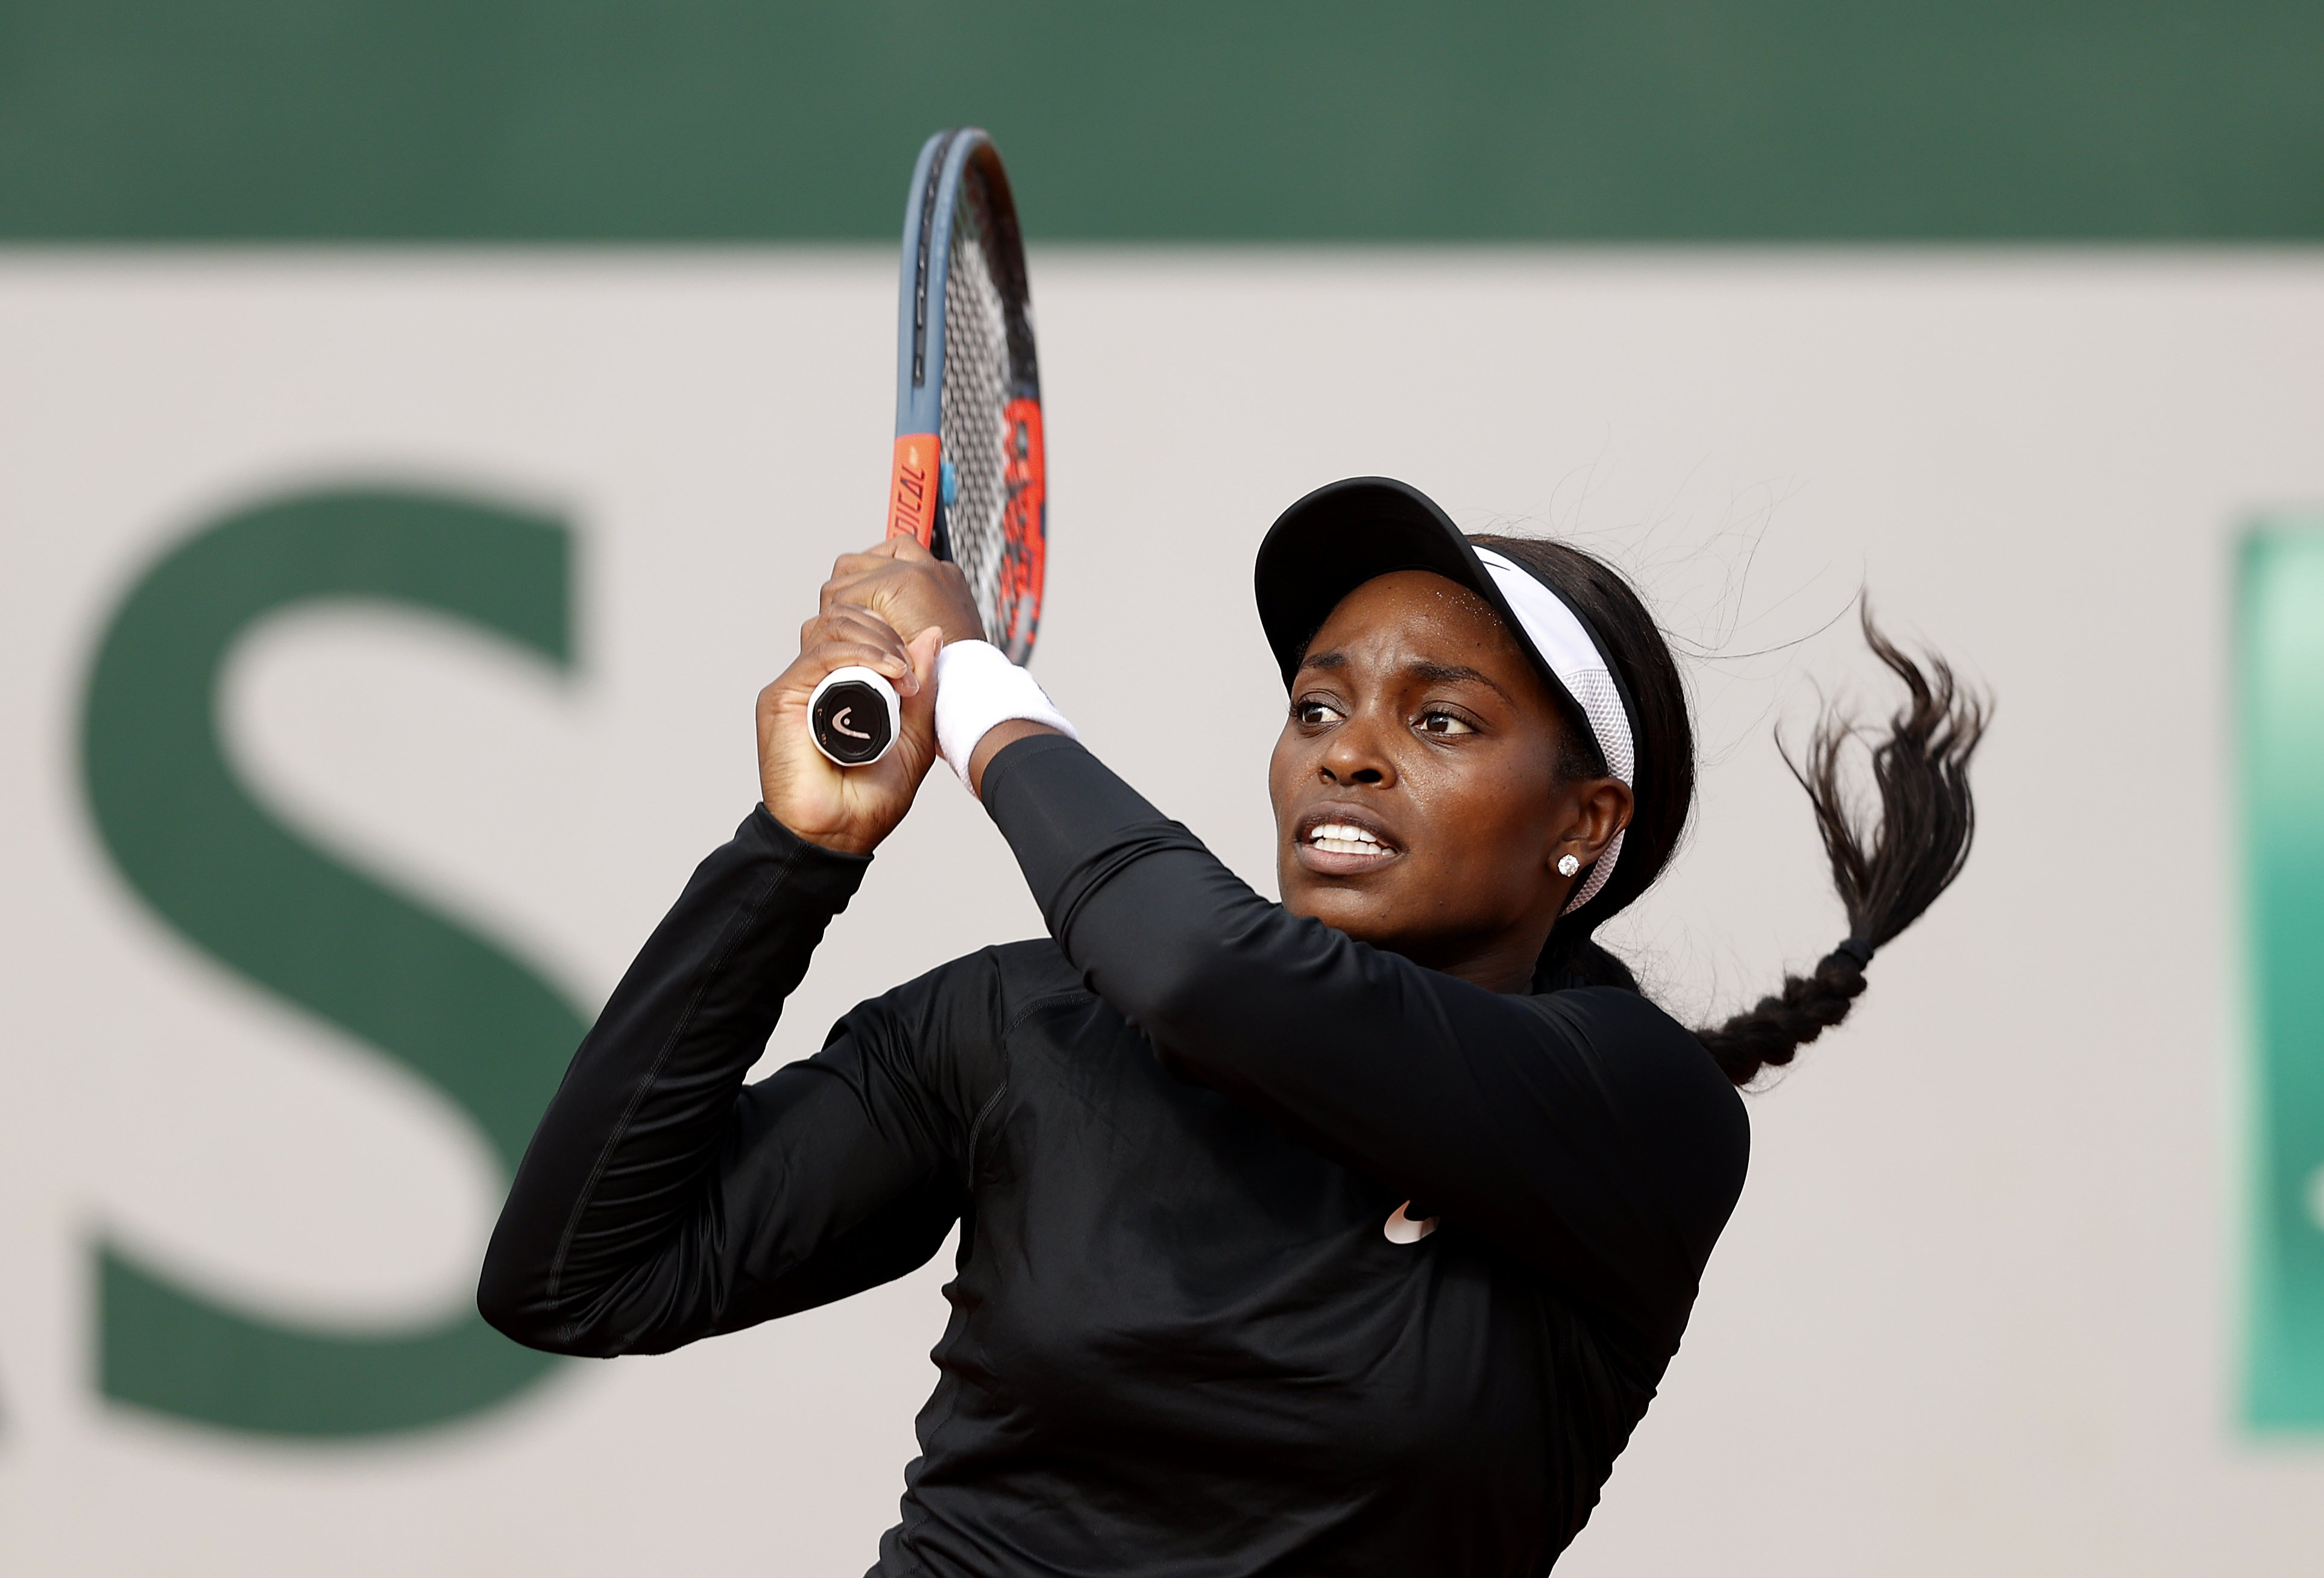 Sloane Stephens plays during the  2020 French Open at Roland Garros on October 01, 2020 in Paris, France. | Source: Getty Images